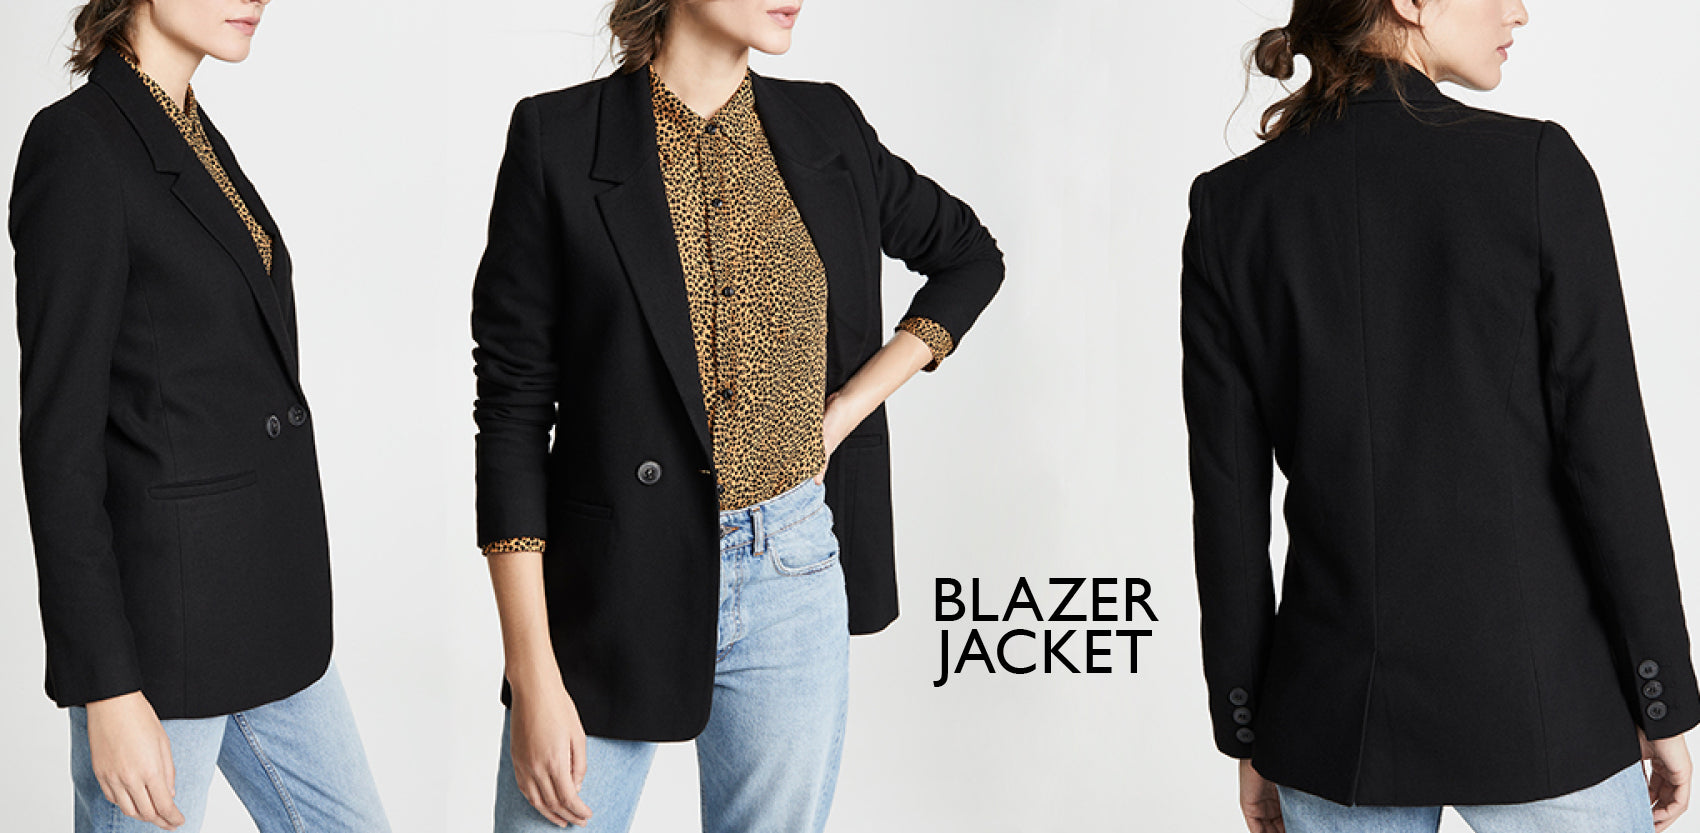 Blazer tailored jacket - Capsule wardrobe